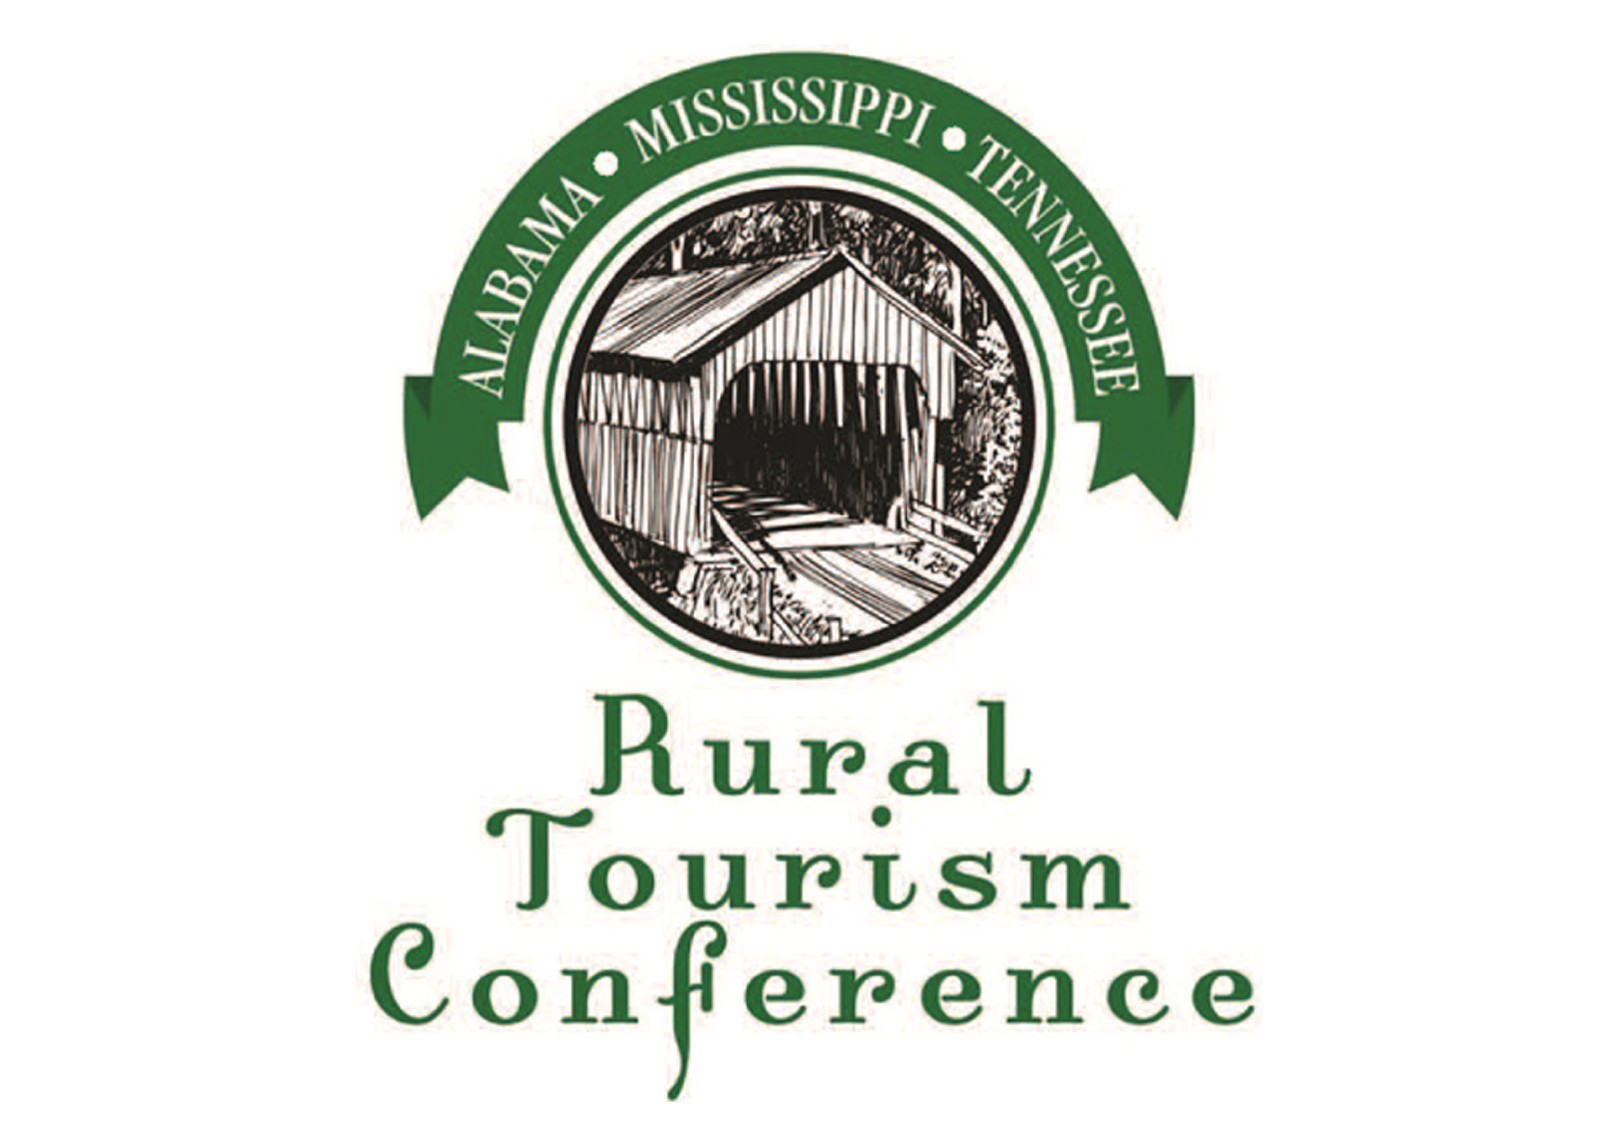 Alabama-Mississippi-Tennessee Rural Tourism Conference logo